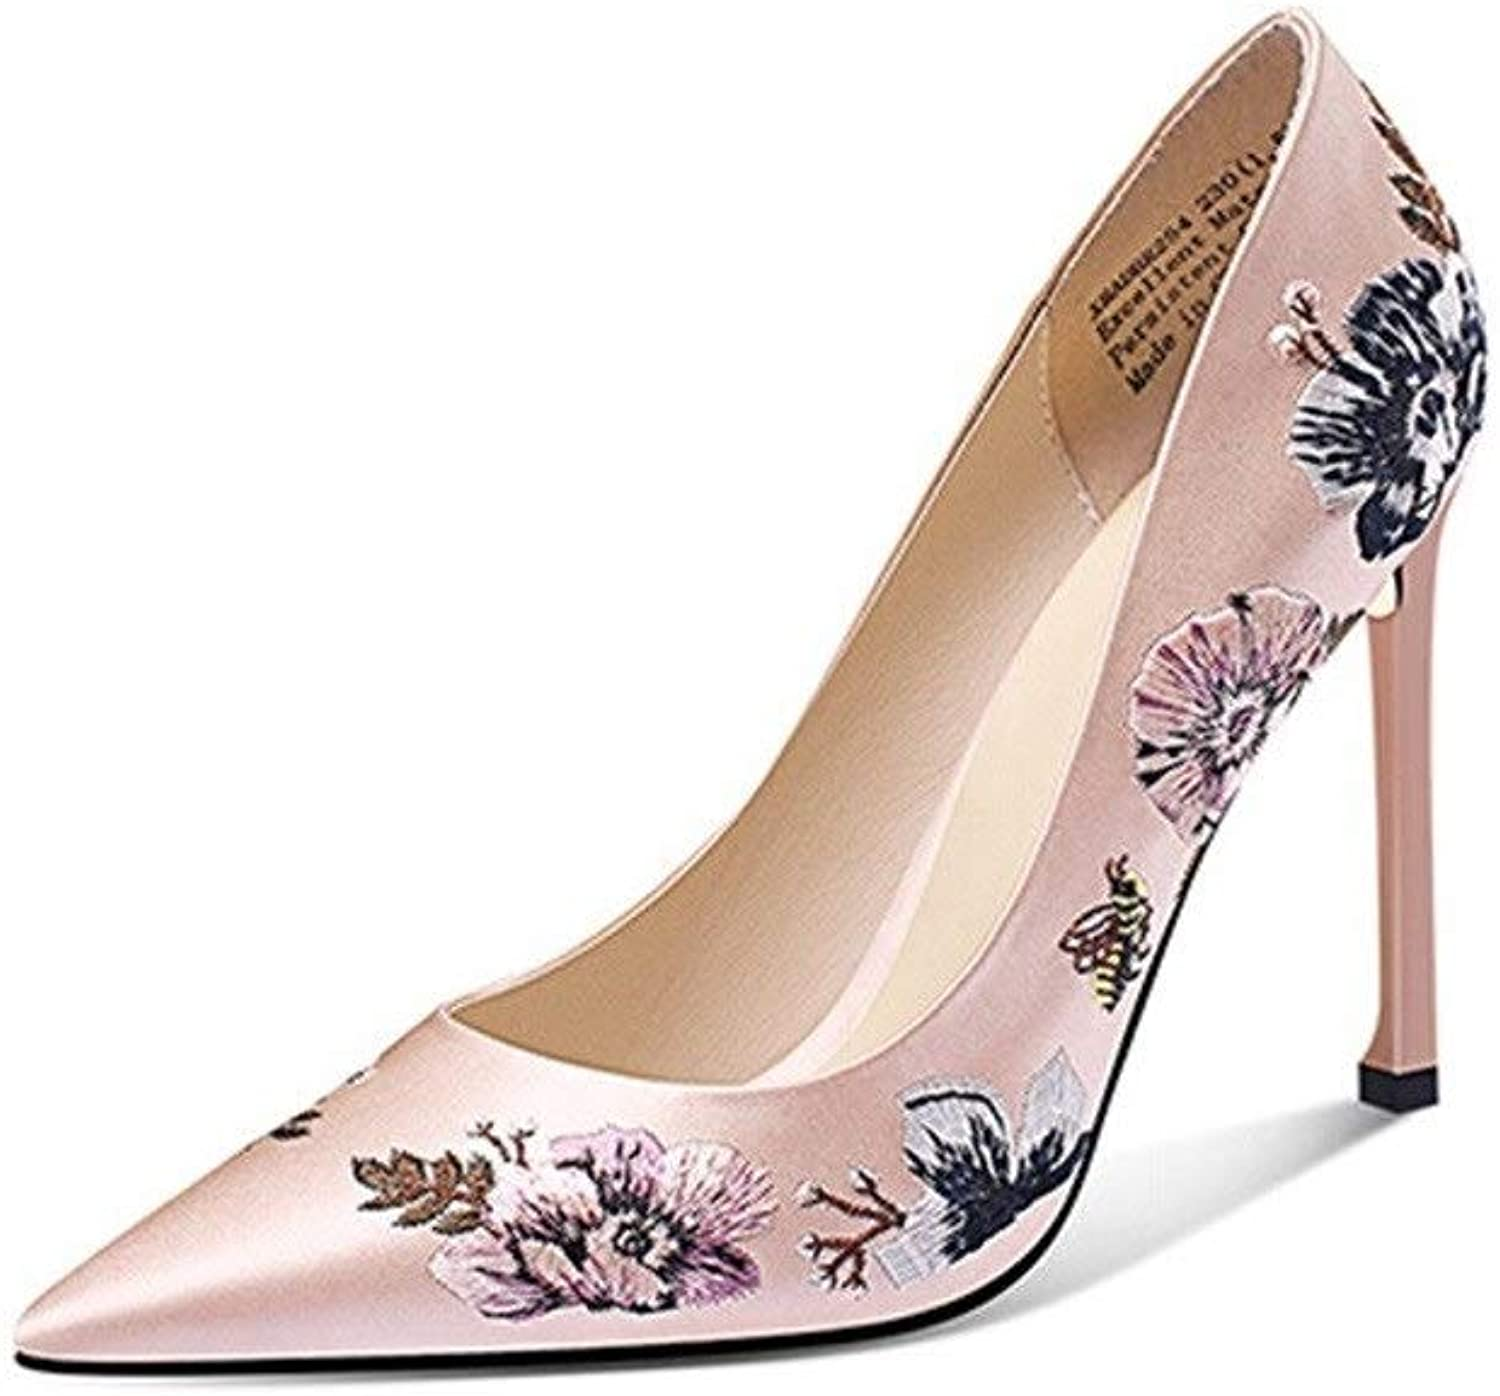 FLYSXP Embroidered shoes Temperament Flowers Silk Cloth High Heels Stiletto Heel Elegant Pointed shoes Pink Dance shoes Evening Dress Bride shoes Women's shoes (color   Pink, Size   35)